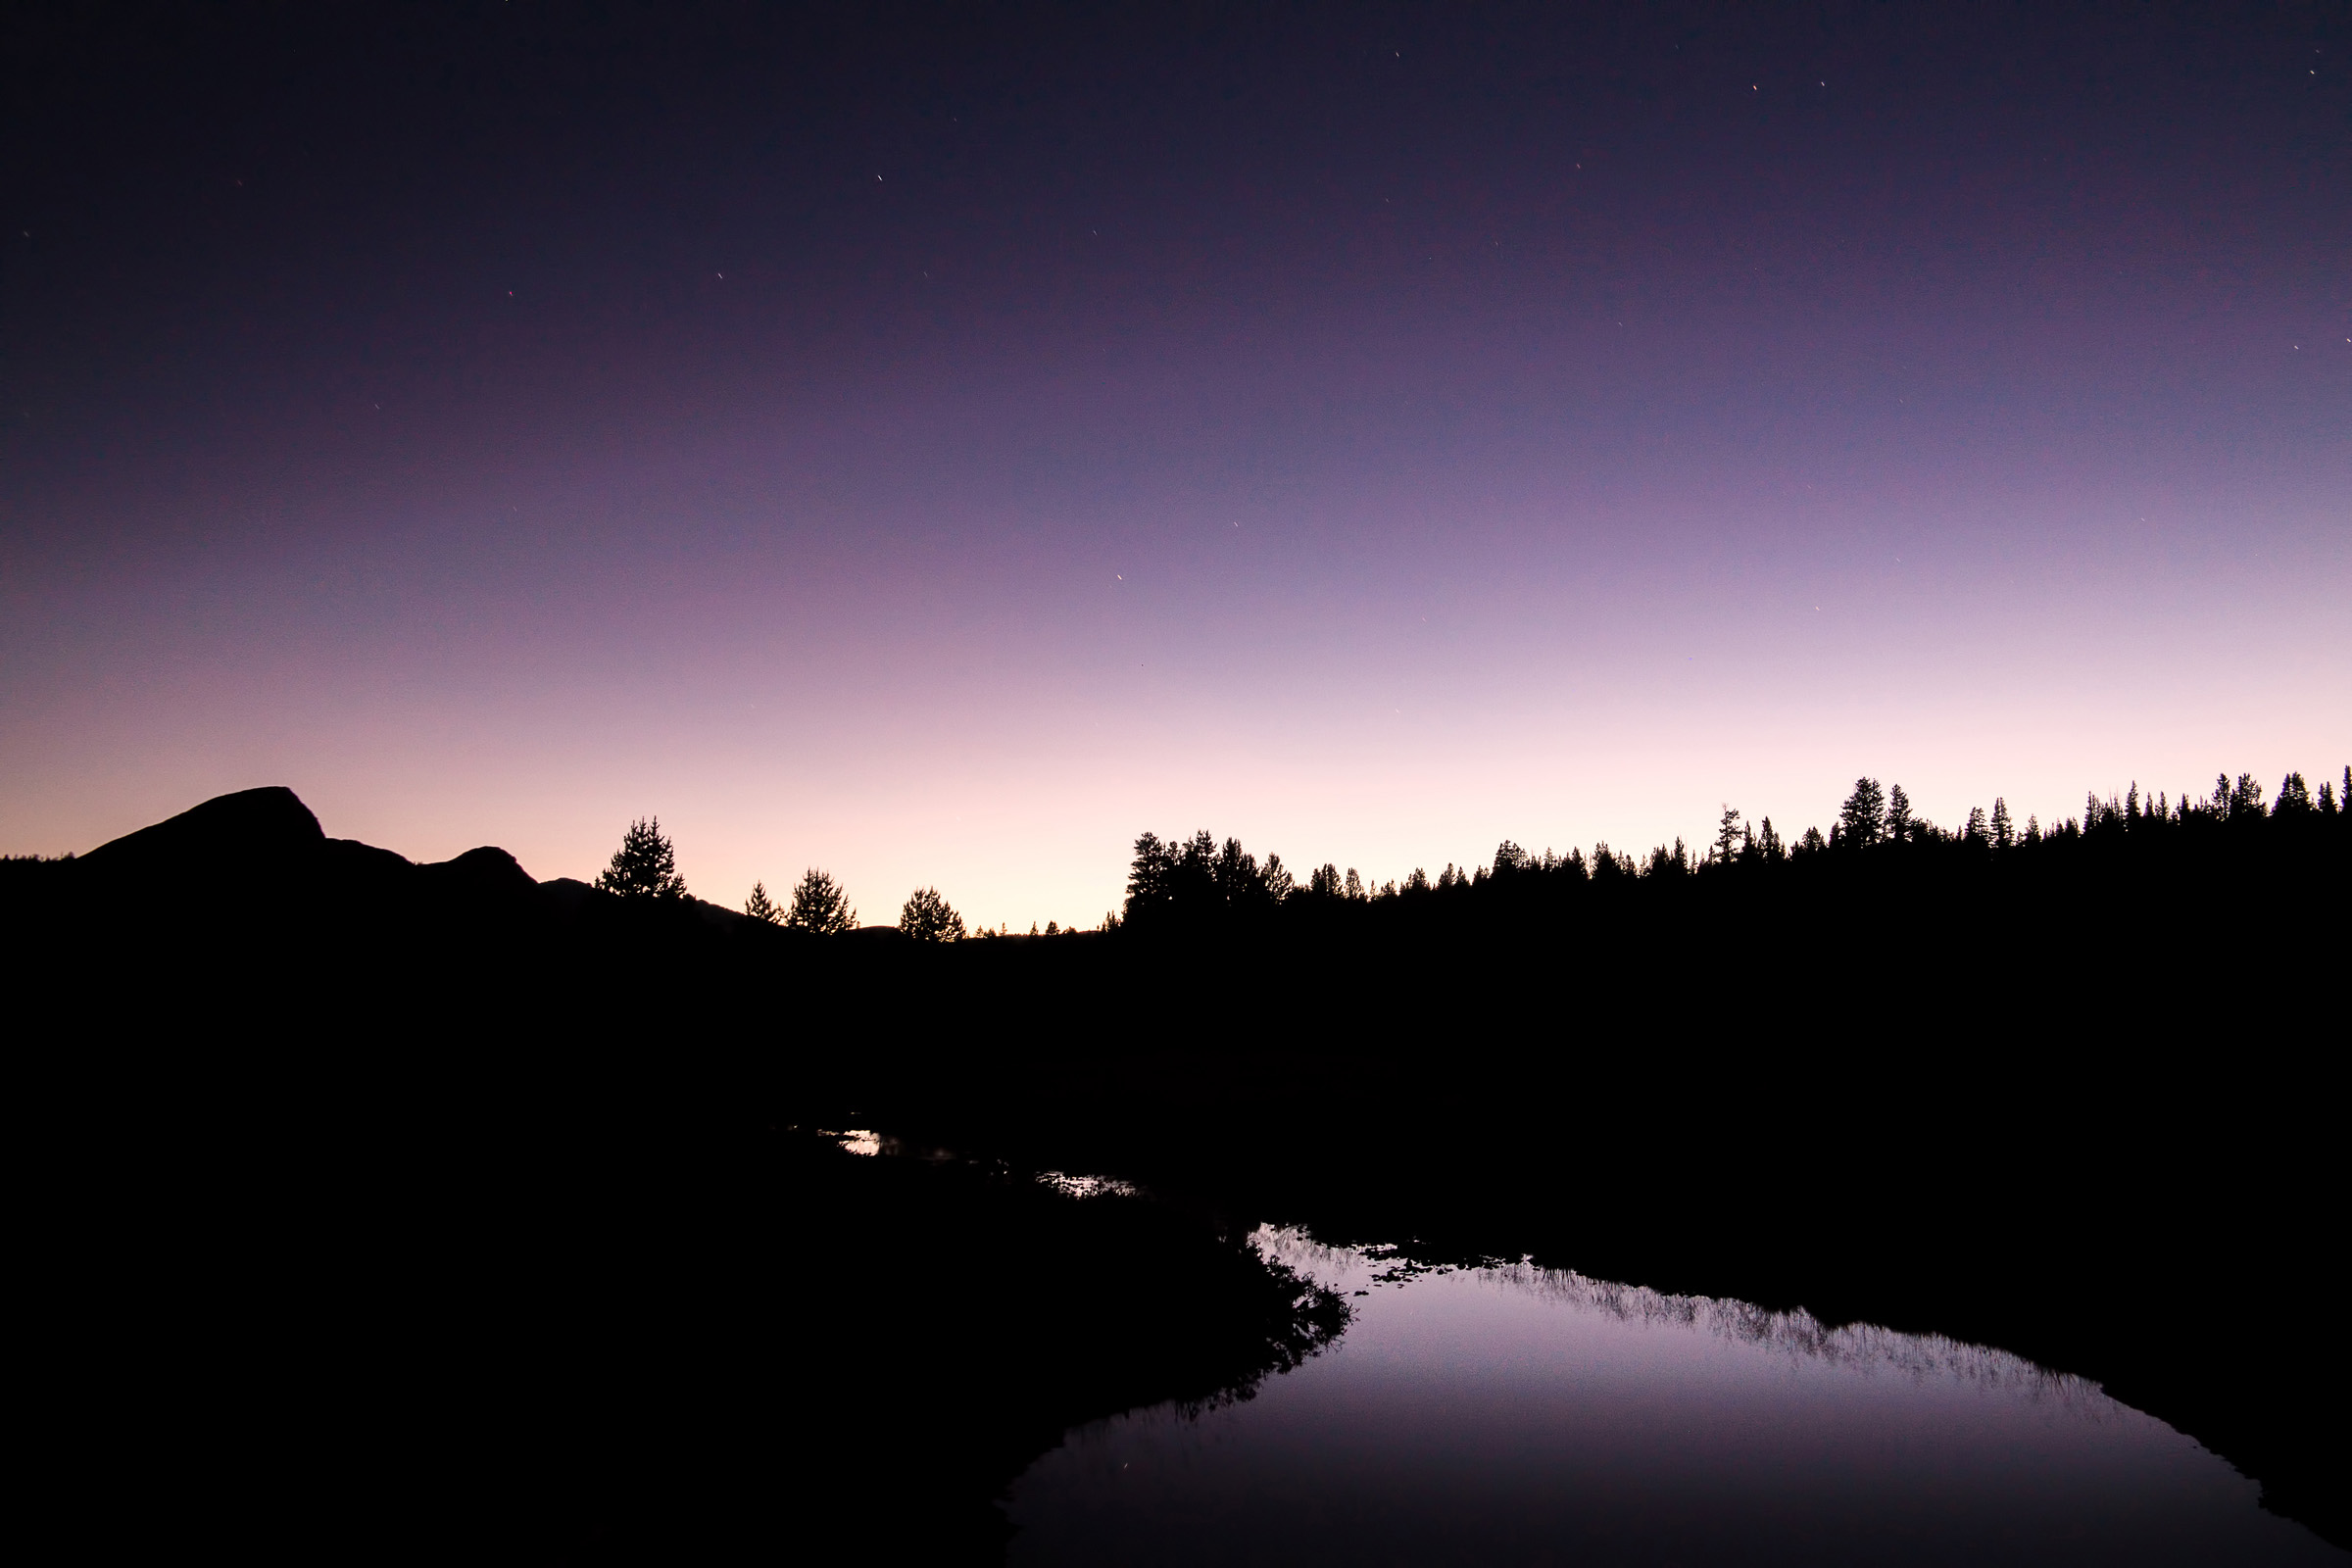 Wasim-Muklashy-Photography_Tuolomne-Meadows_Yosemite_California_Twilight-Over-Tuolumne.jpg